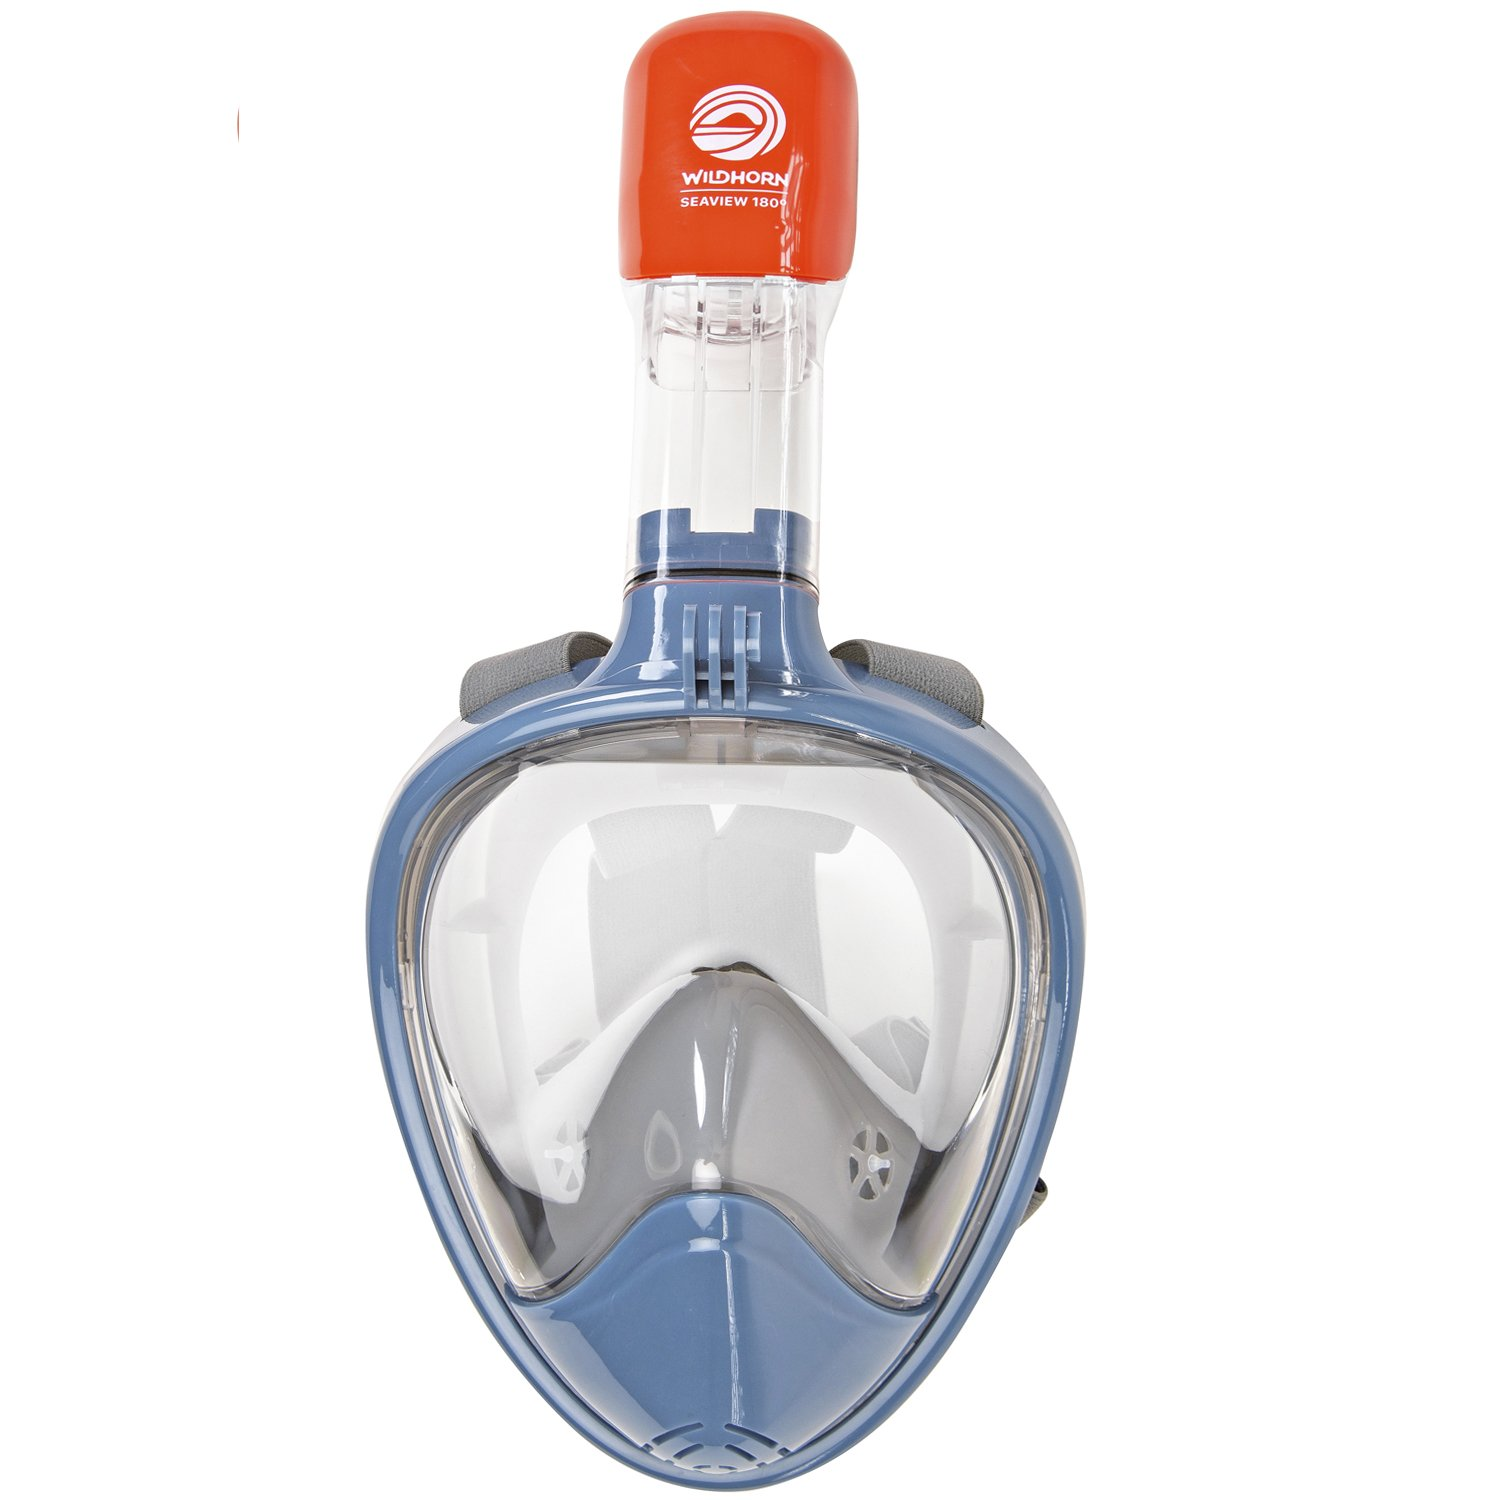 Seaview 180° GoPro Compatible Snorkel Mask- Panoramic Full Face Design. See More With Larger Viewing Area Than Traditional Masks. Prevents Gag Reflex with Tubeless Design (Manta Ray, S/M) by WildHorn Outfitters (Image #9)